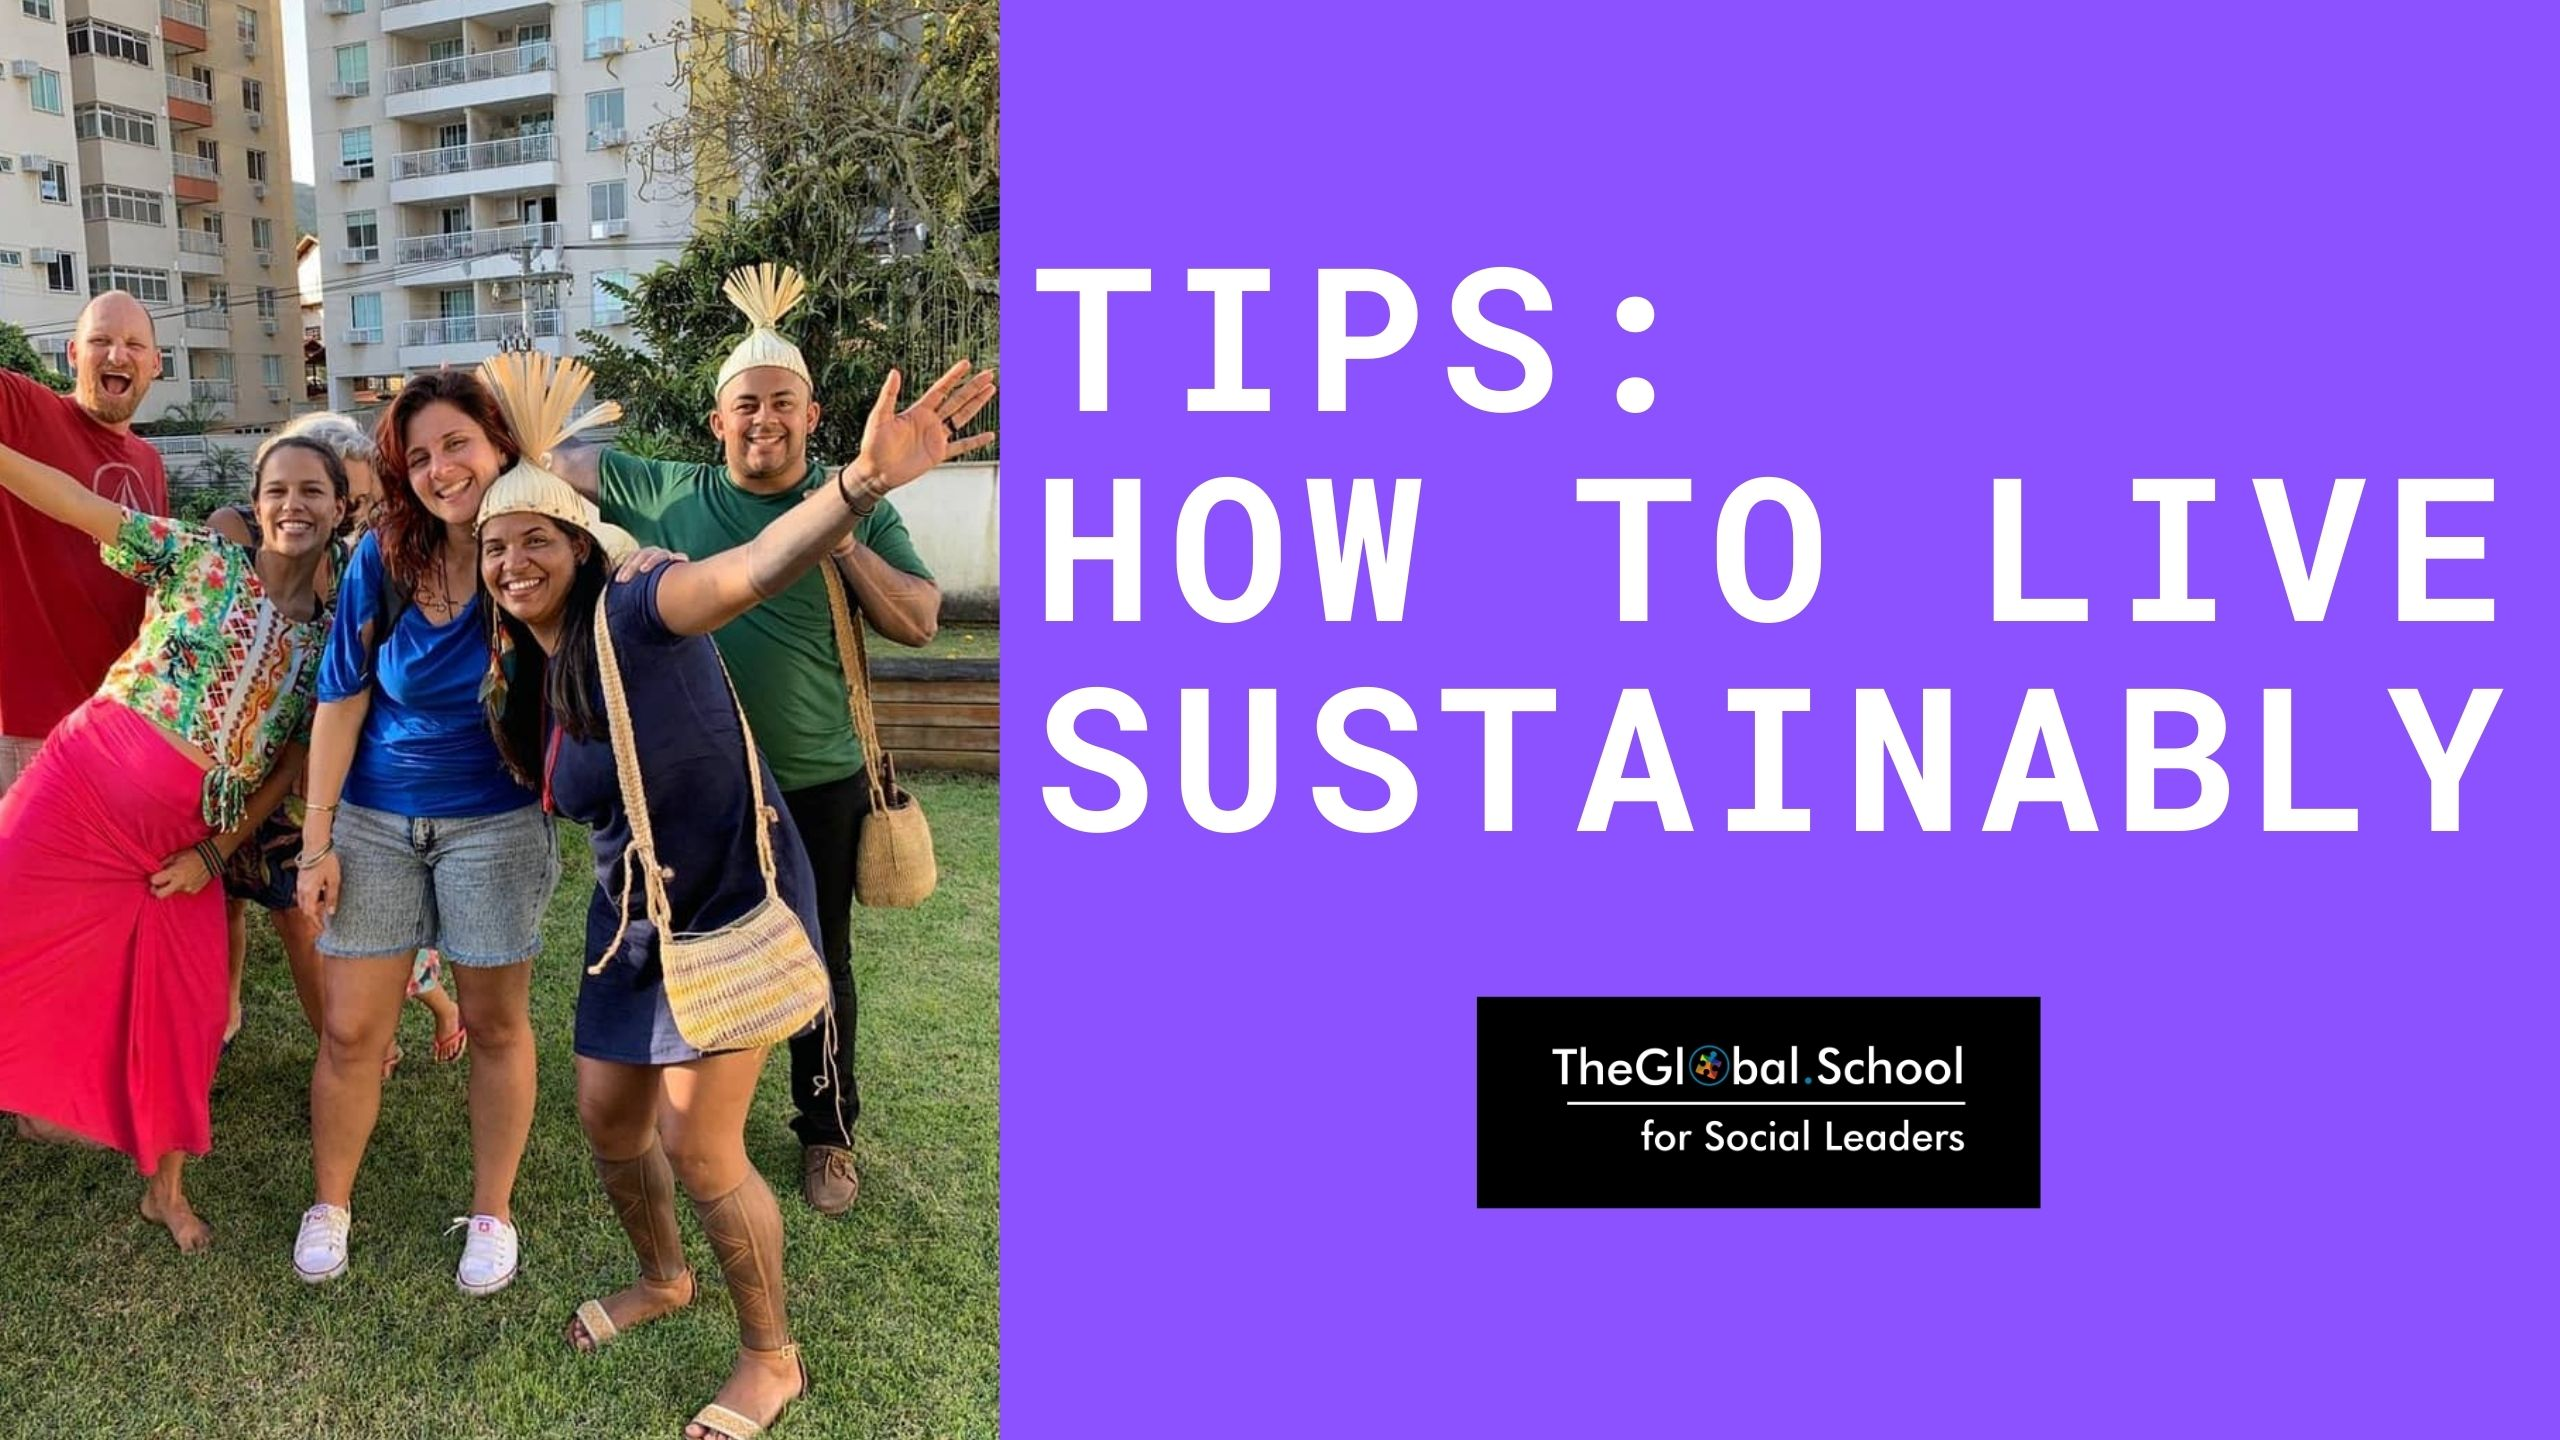 Tips: how to live sustainably